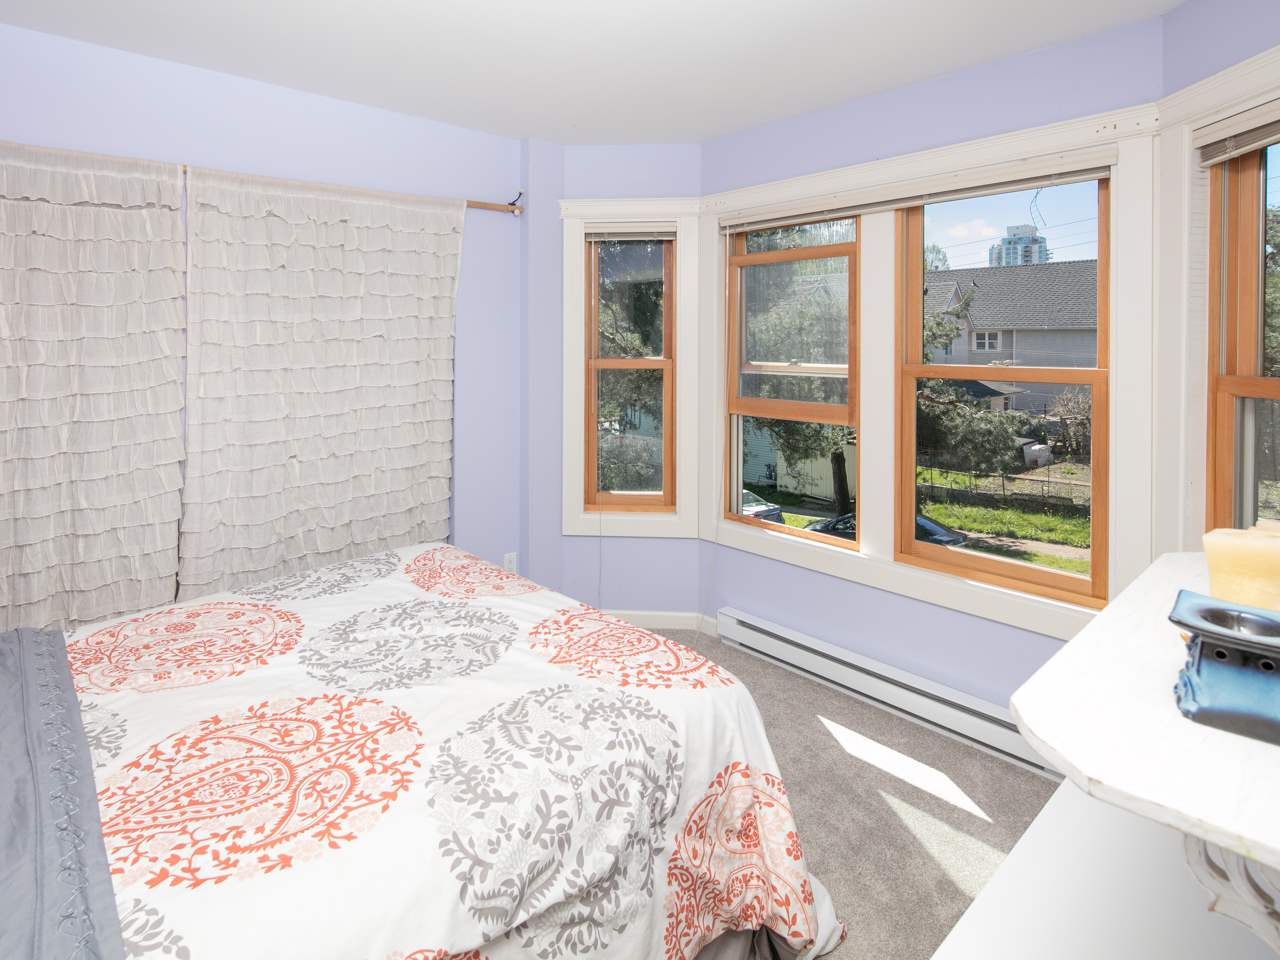 Photo 11: 840 DUNLEVY Avenue in Vancouver: Mount Pleasant VE House for sale (Vancouver East)  : MLS(r) # R2159141